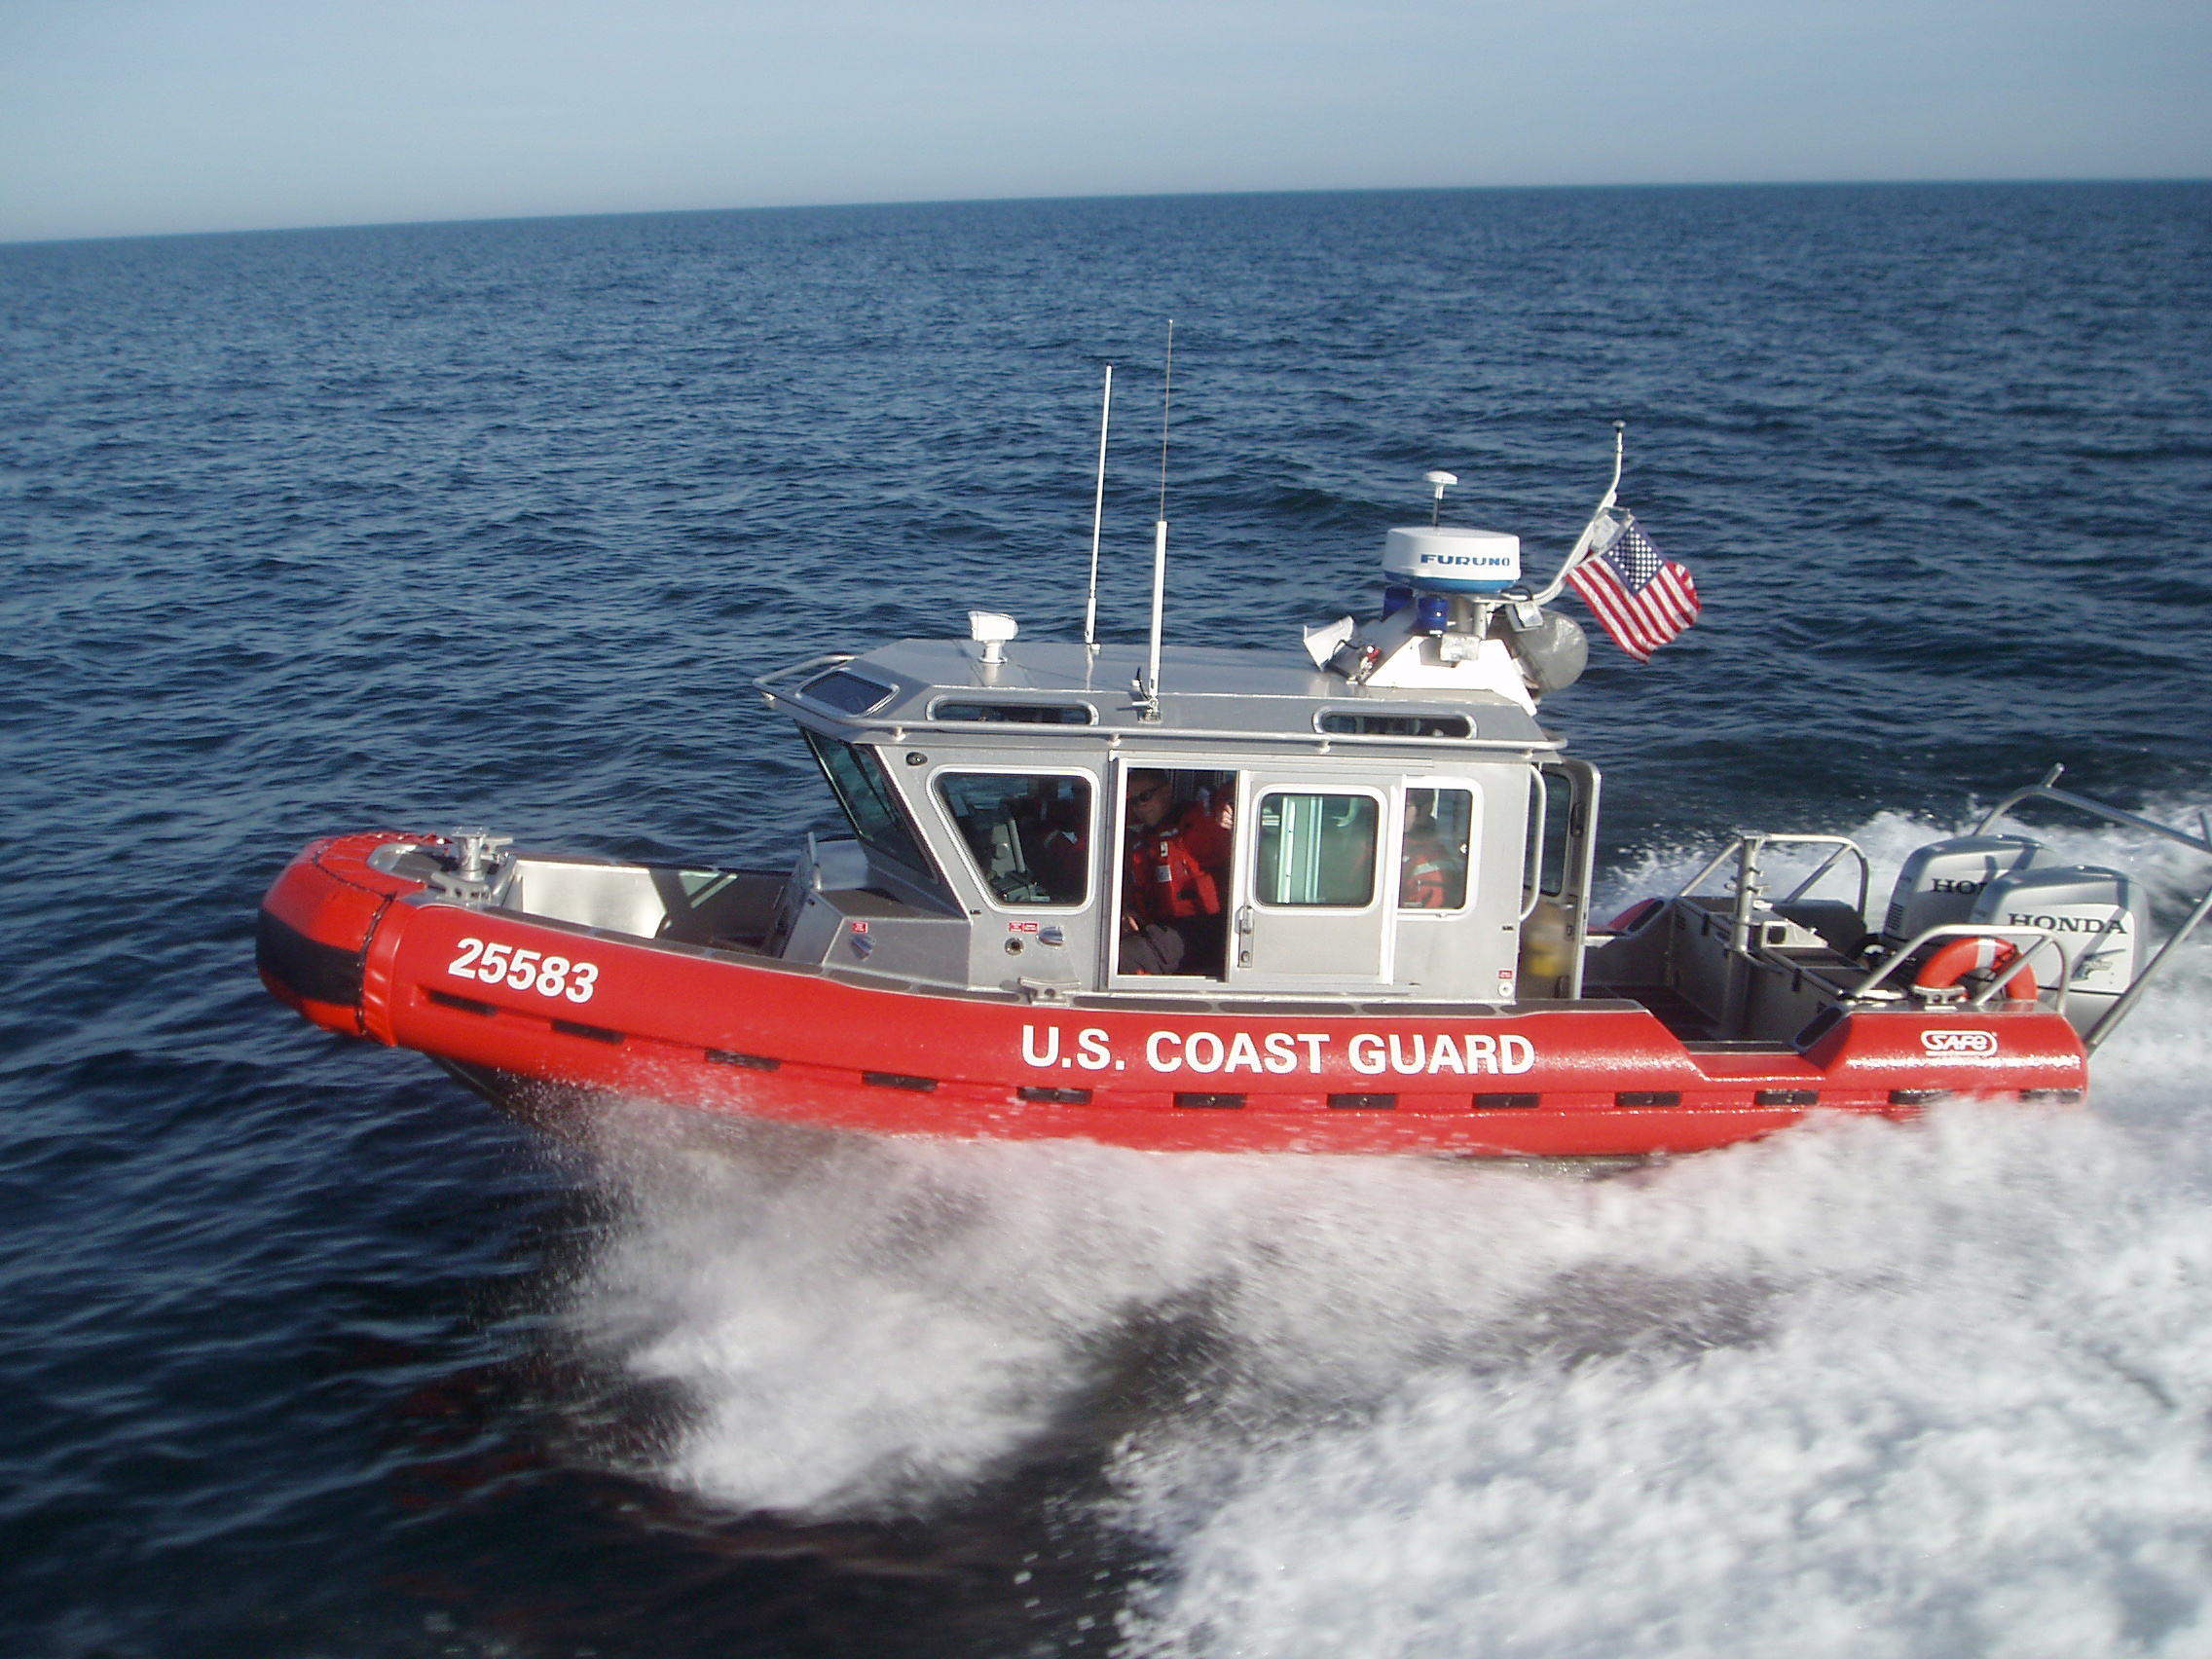 Coast Guard searching for missing swimmer off Point Pleasant Beach, NJ